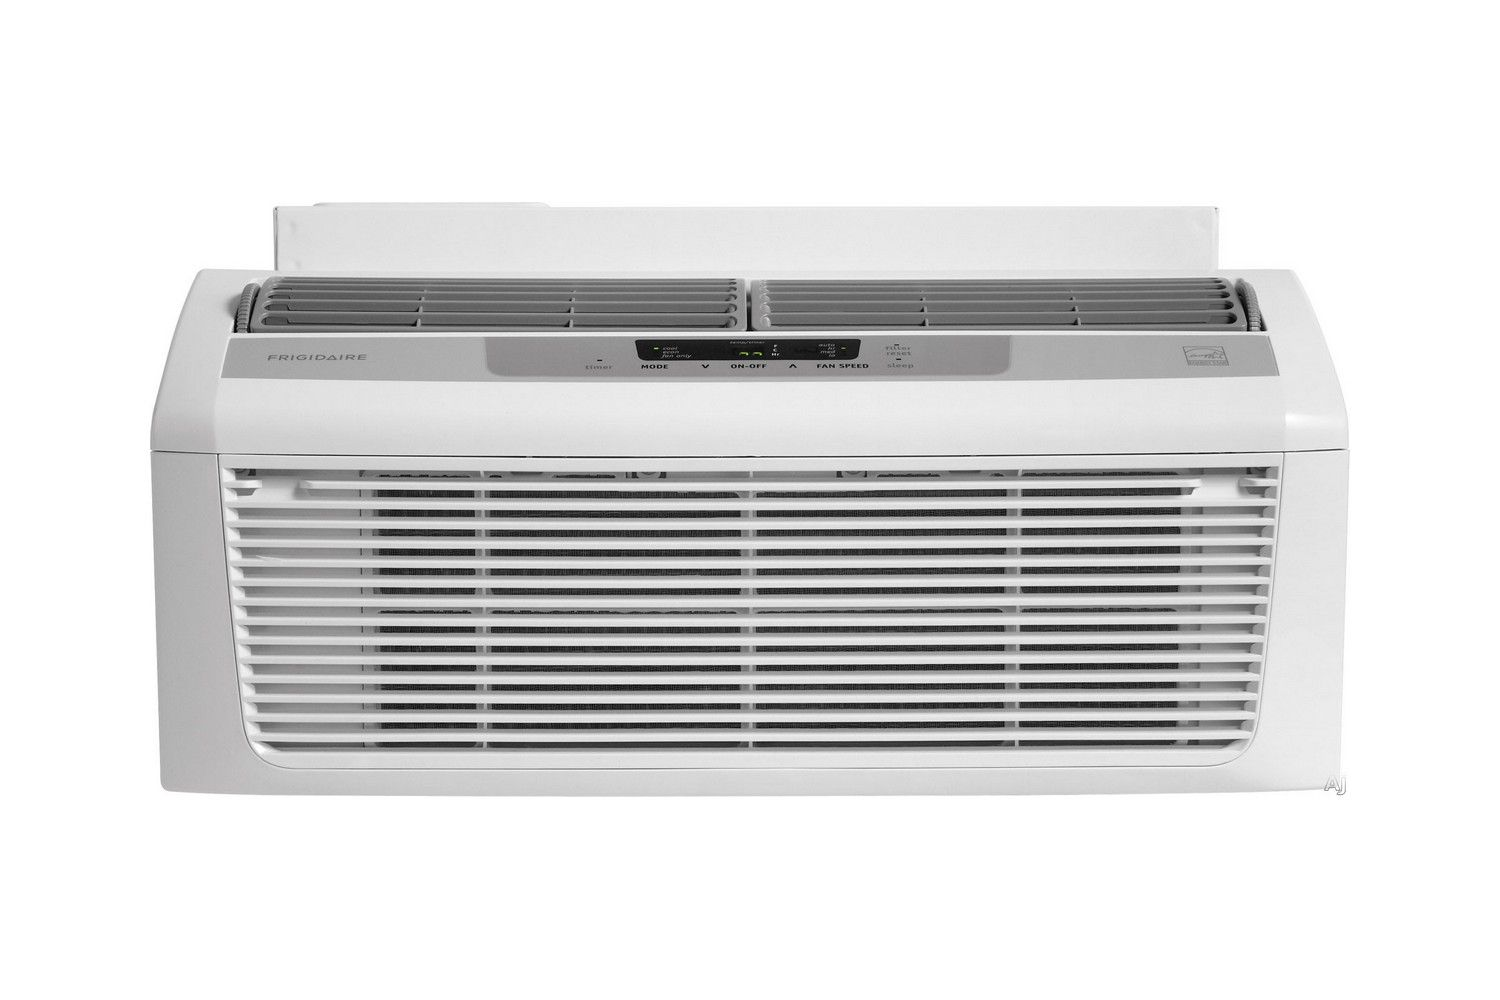 A Small Air Conditioner Unit Care About Health Best Window Air Conditioner Smallest Air Conditioner Air Conditioner Units